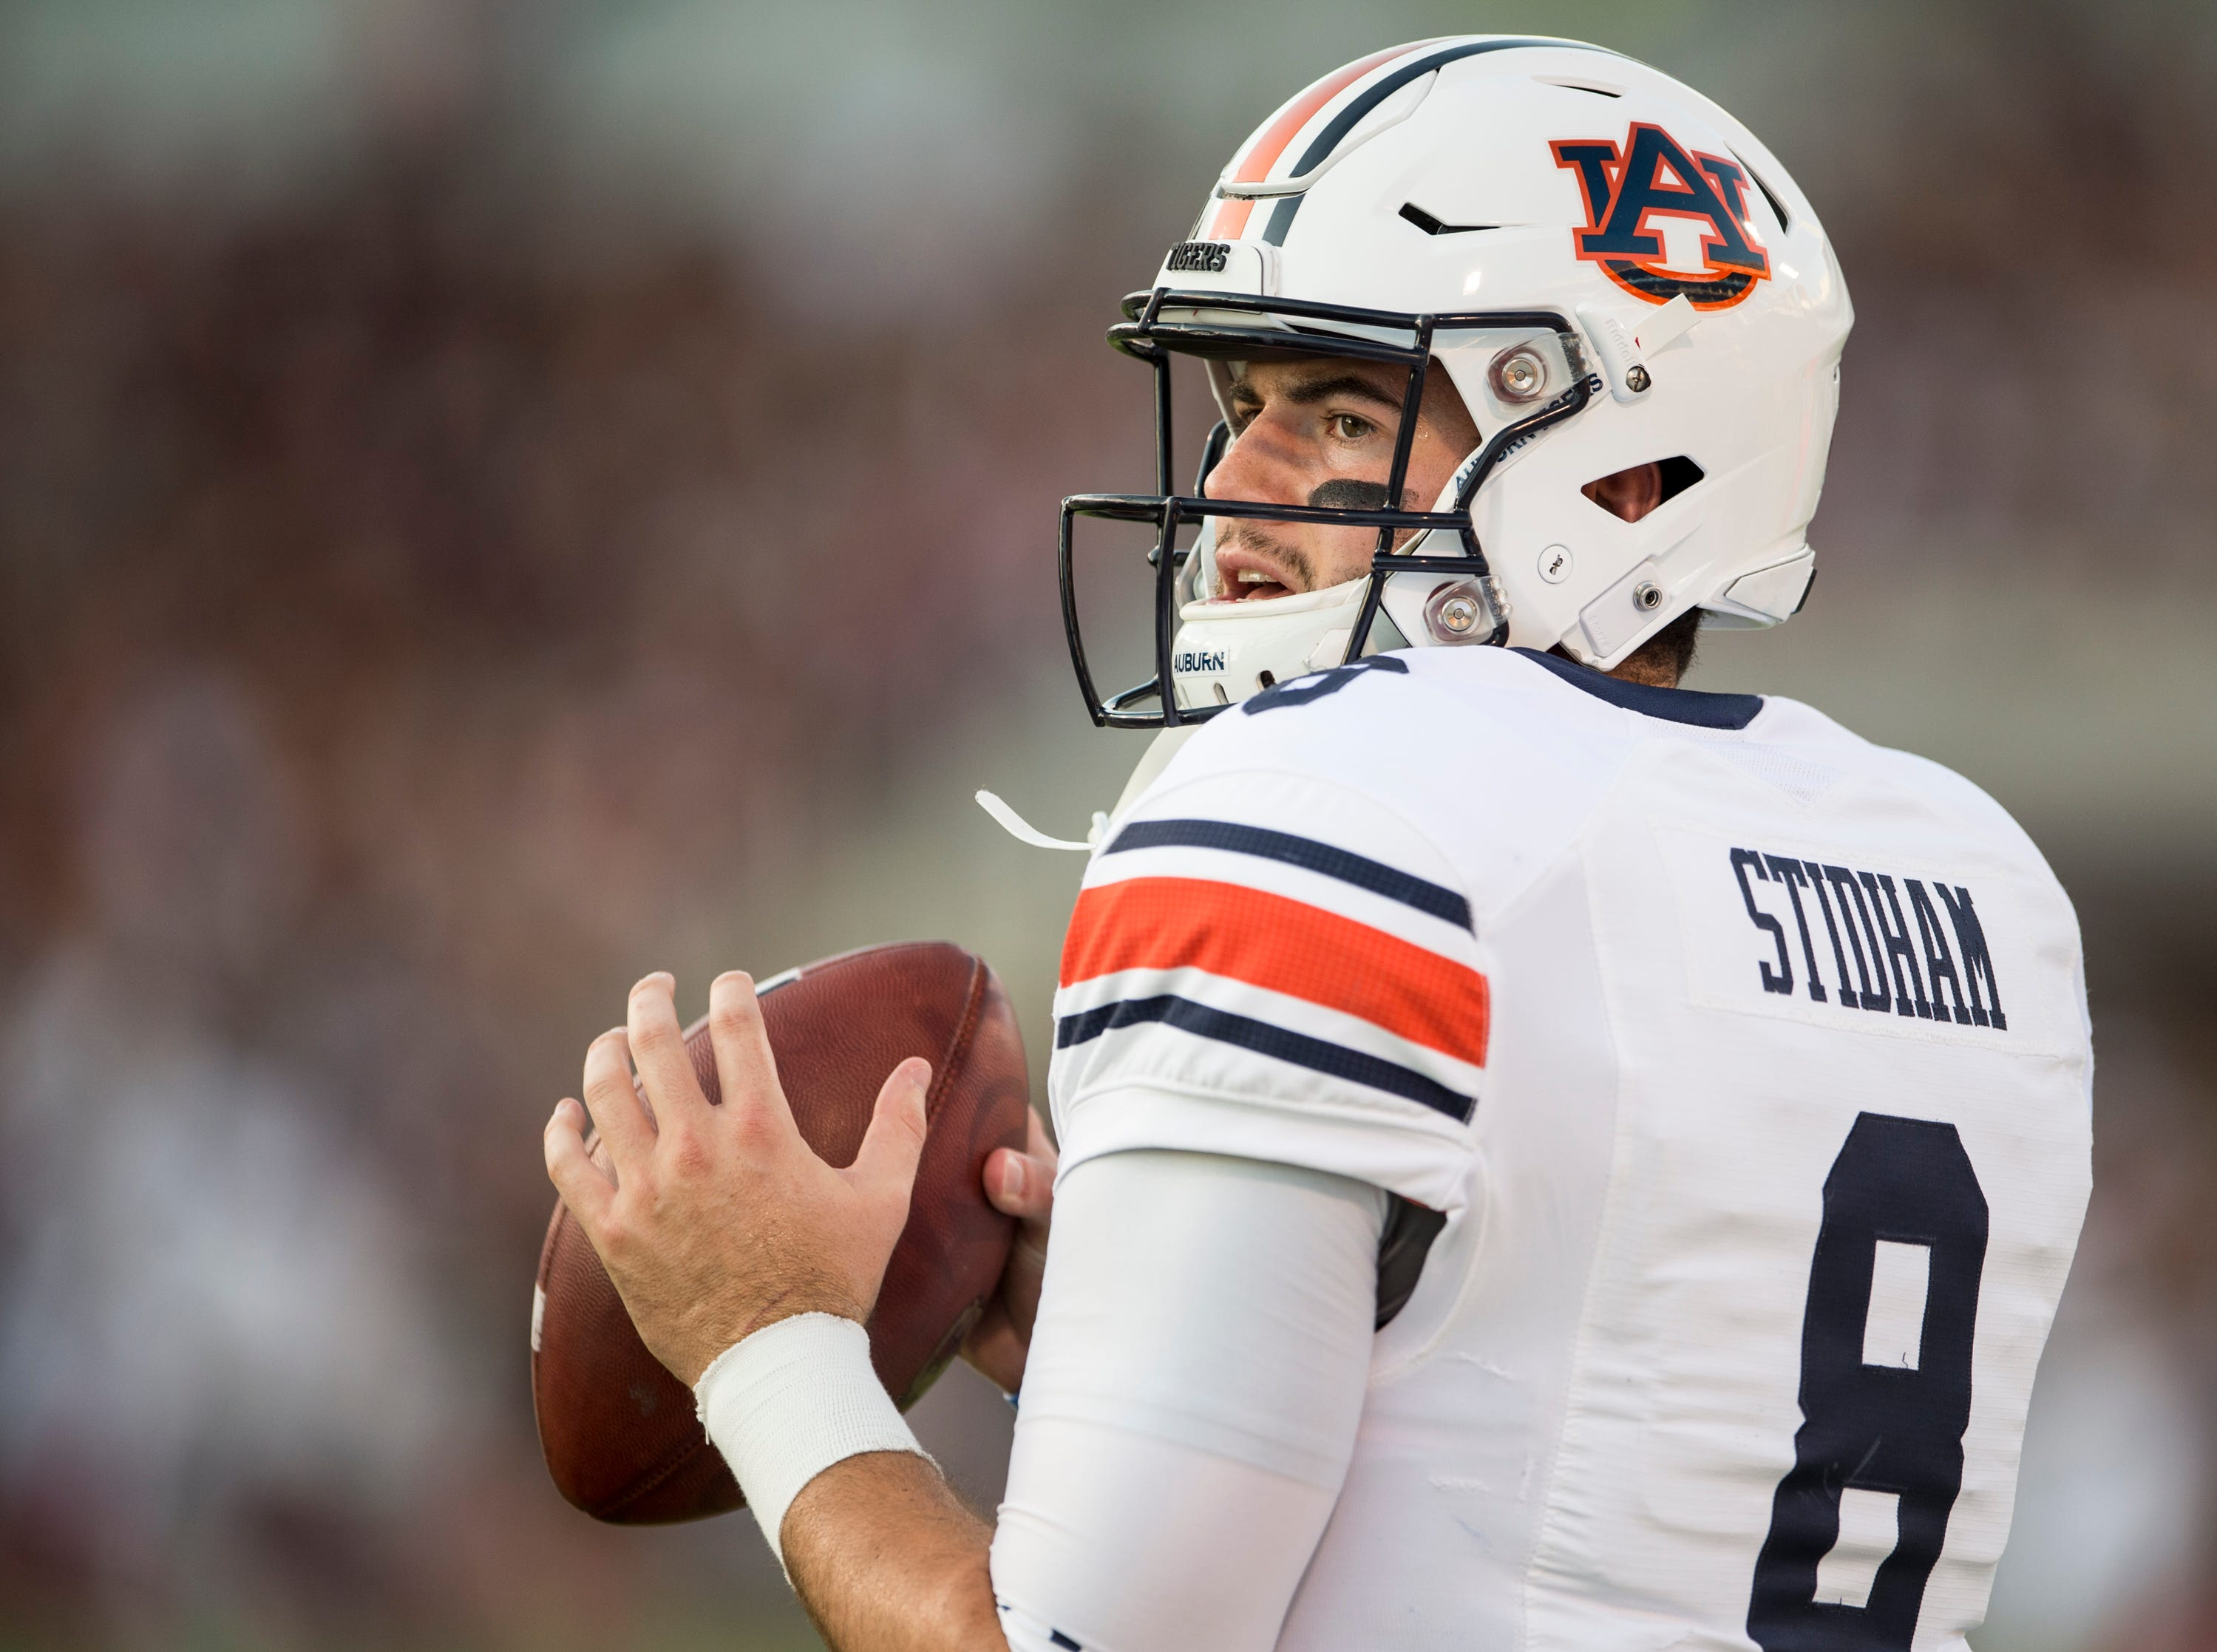 Auburn's Jarrett Stidham (8) warms up at Davis Wade Stadium in Starkville, Miss., on Saturday, Oct. 6, 2018.